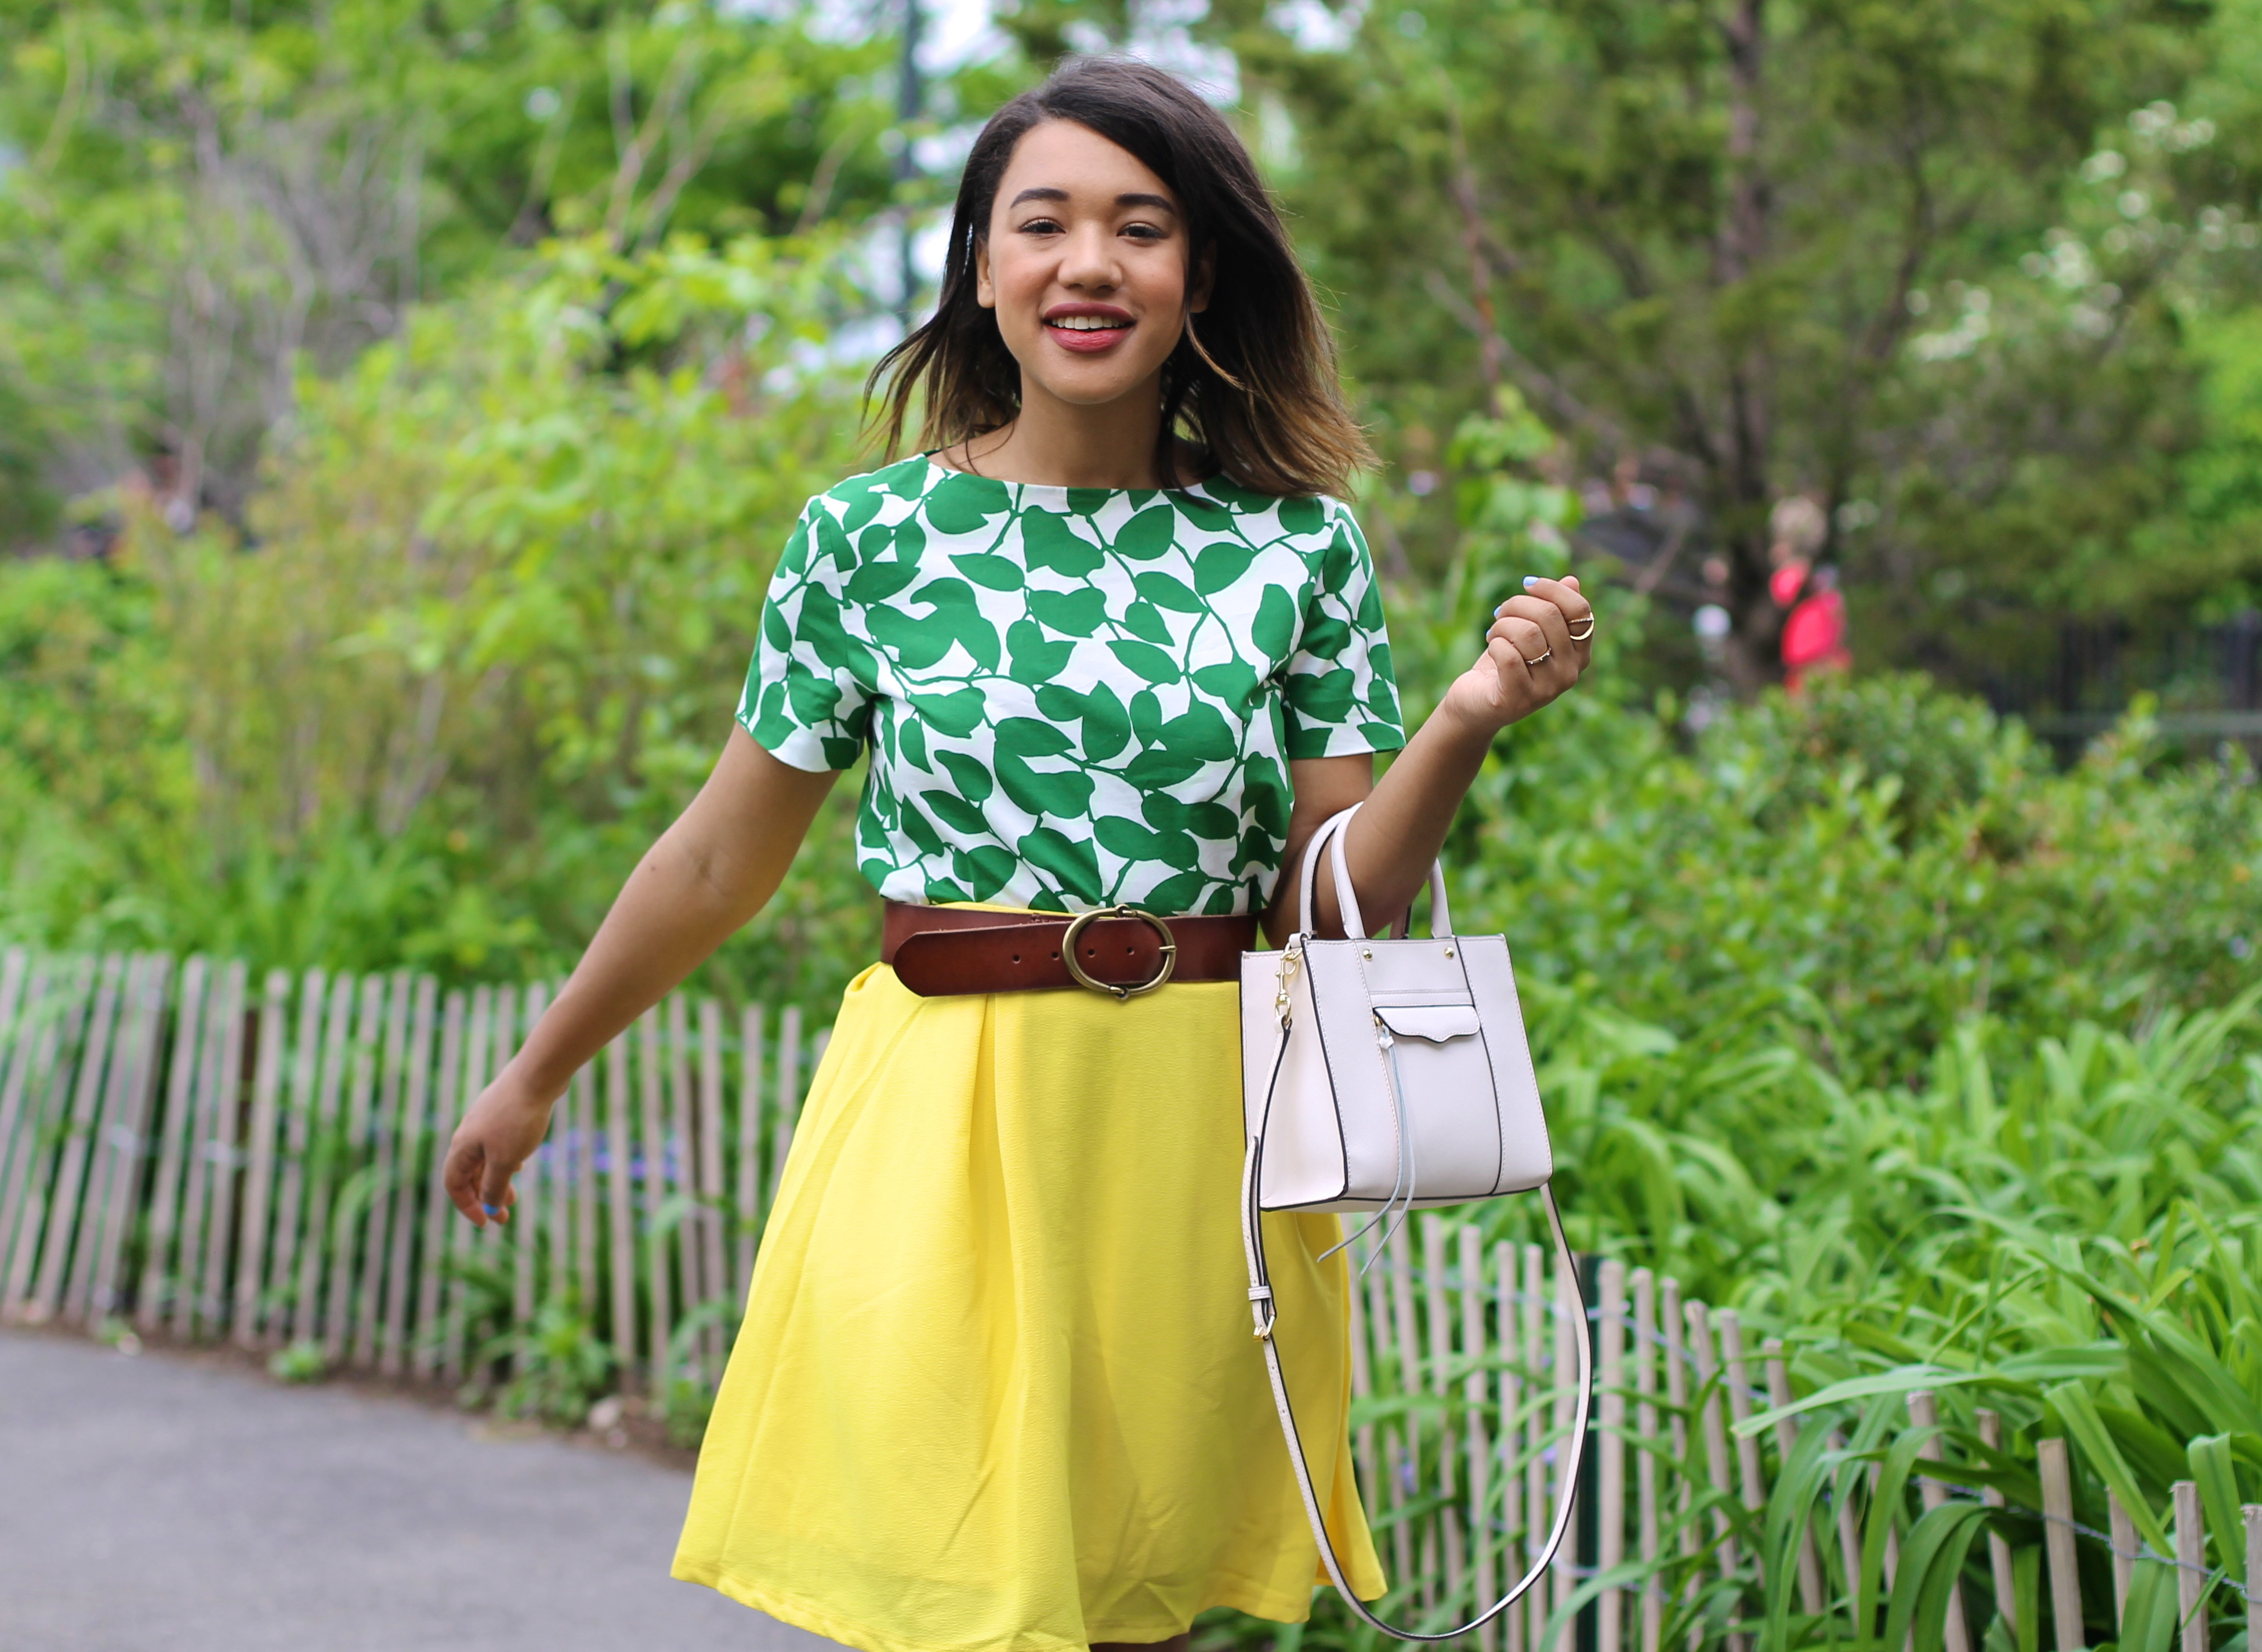 yellow and green green and yellow blair waldorf style look of the day blogger style kate spade blogger kate spade fashion blog kate spade blog kate spade crop top yellow skirt yellow crop top summer style spring style new york style fashion bloggers to follow fashion blogger new york new york fashion blogger